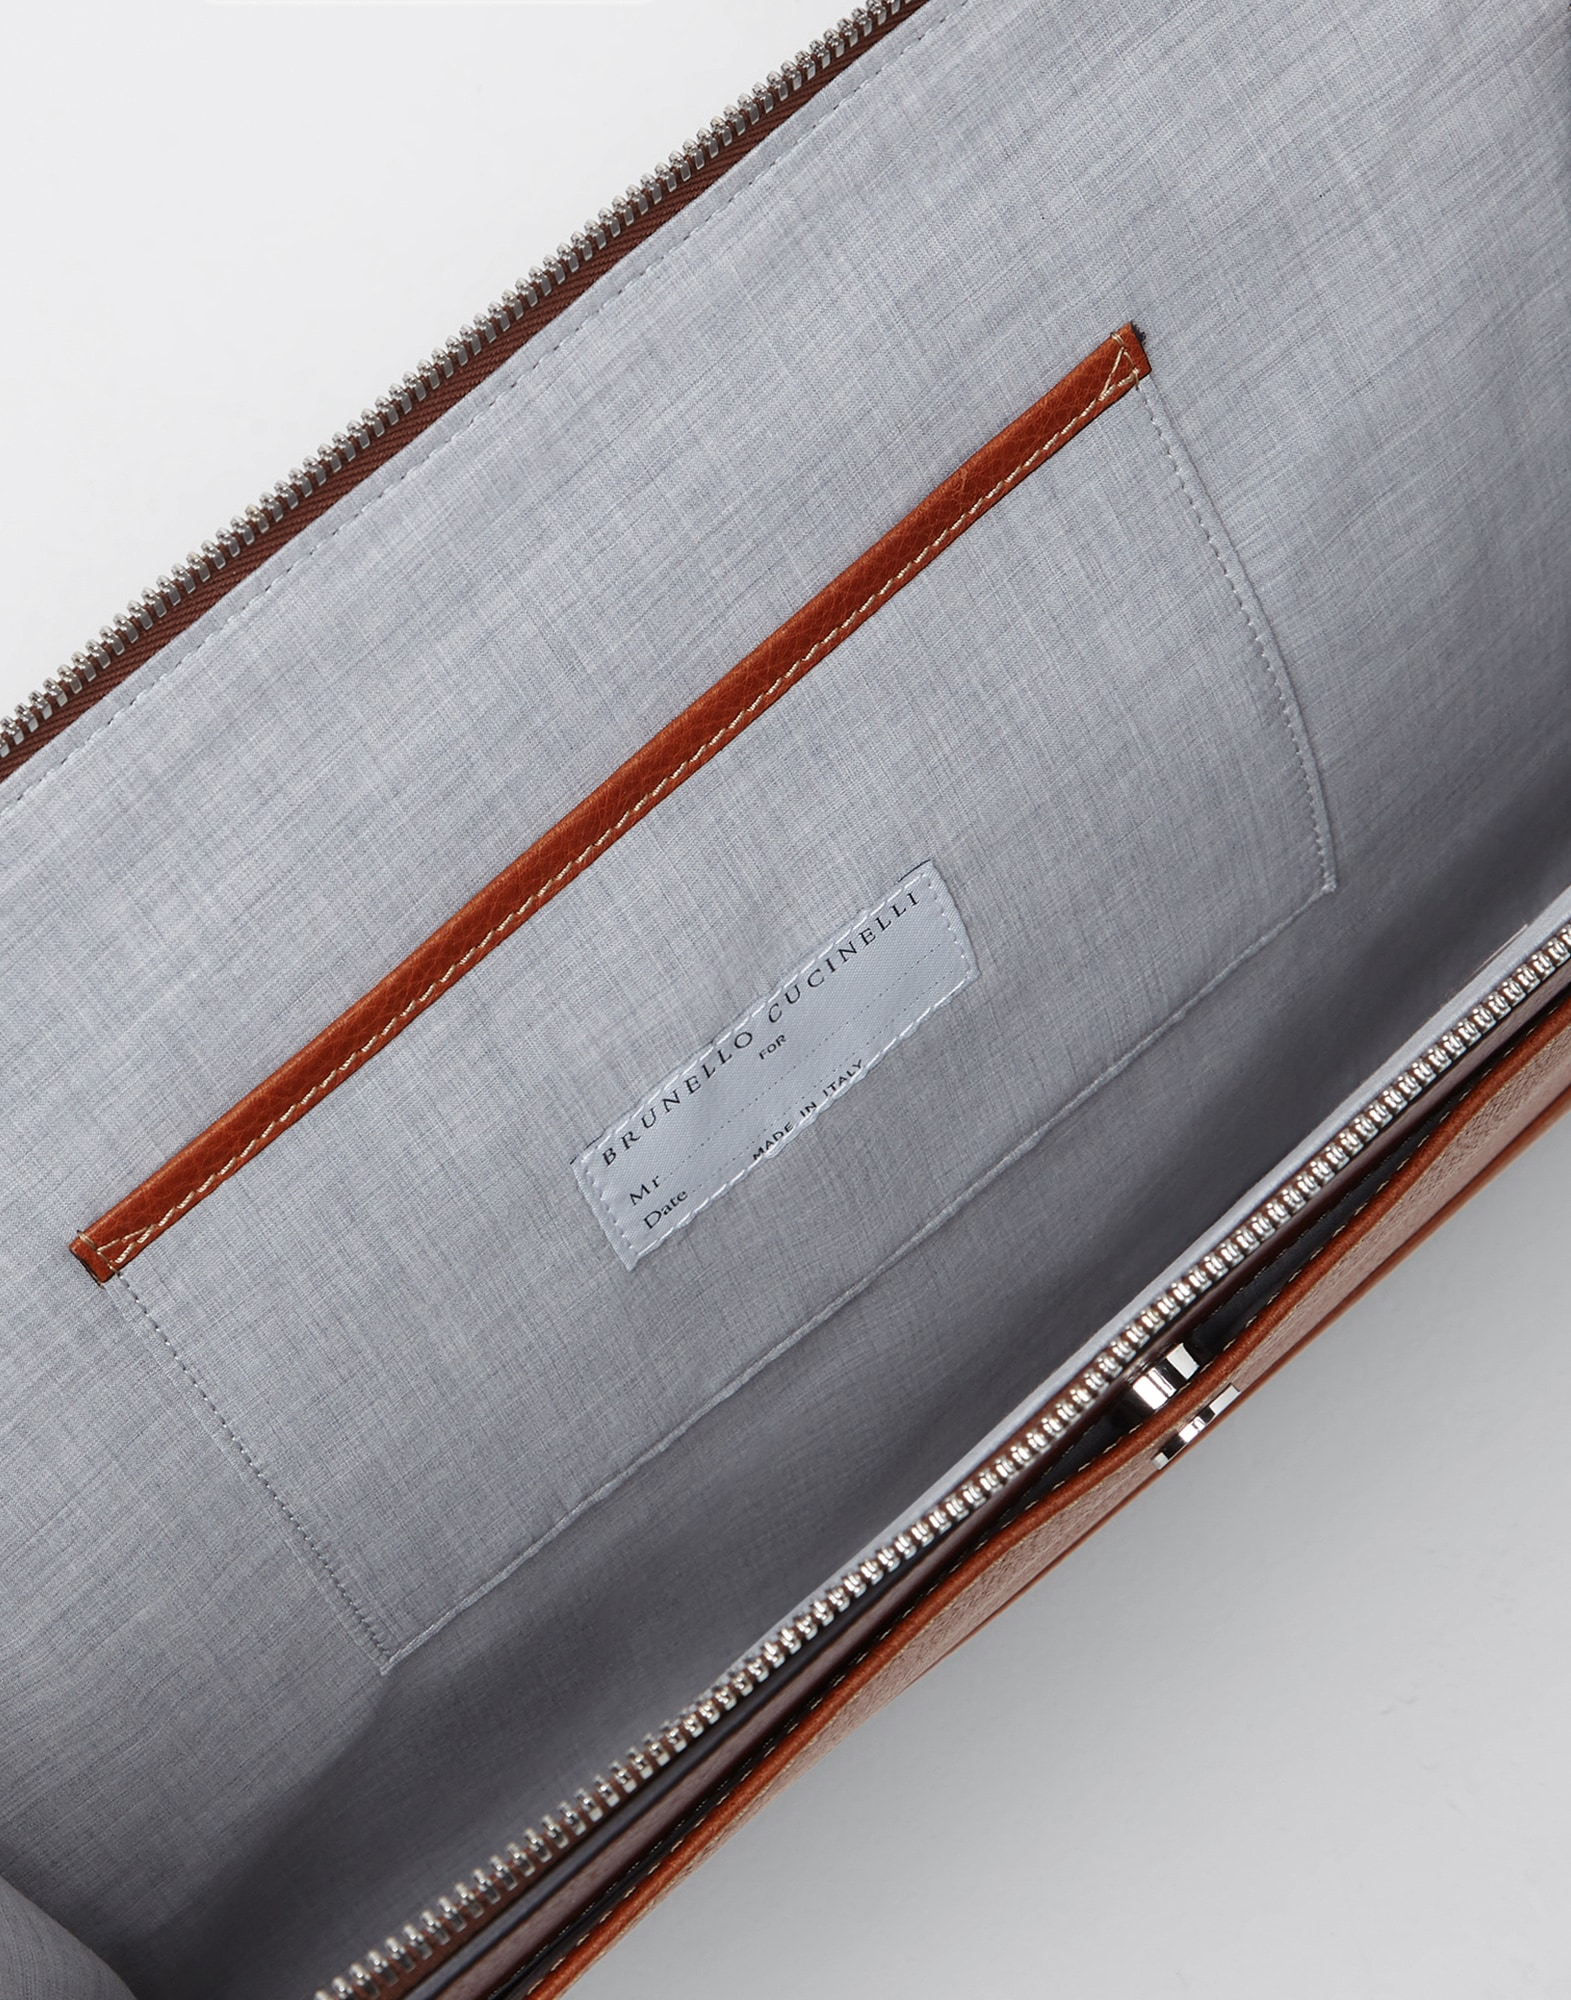 Document Holder Rum Man 2 - Brunello Cucinelli